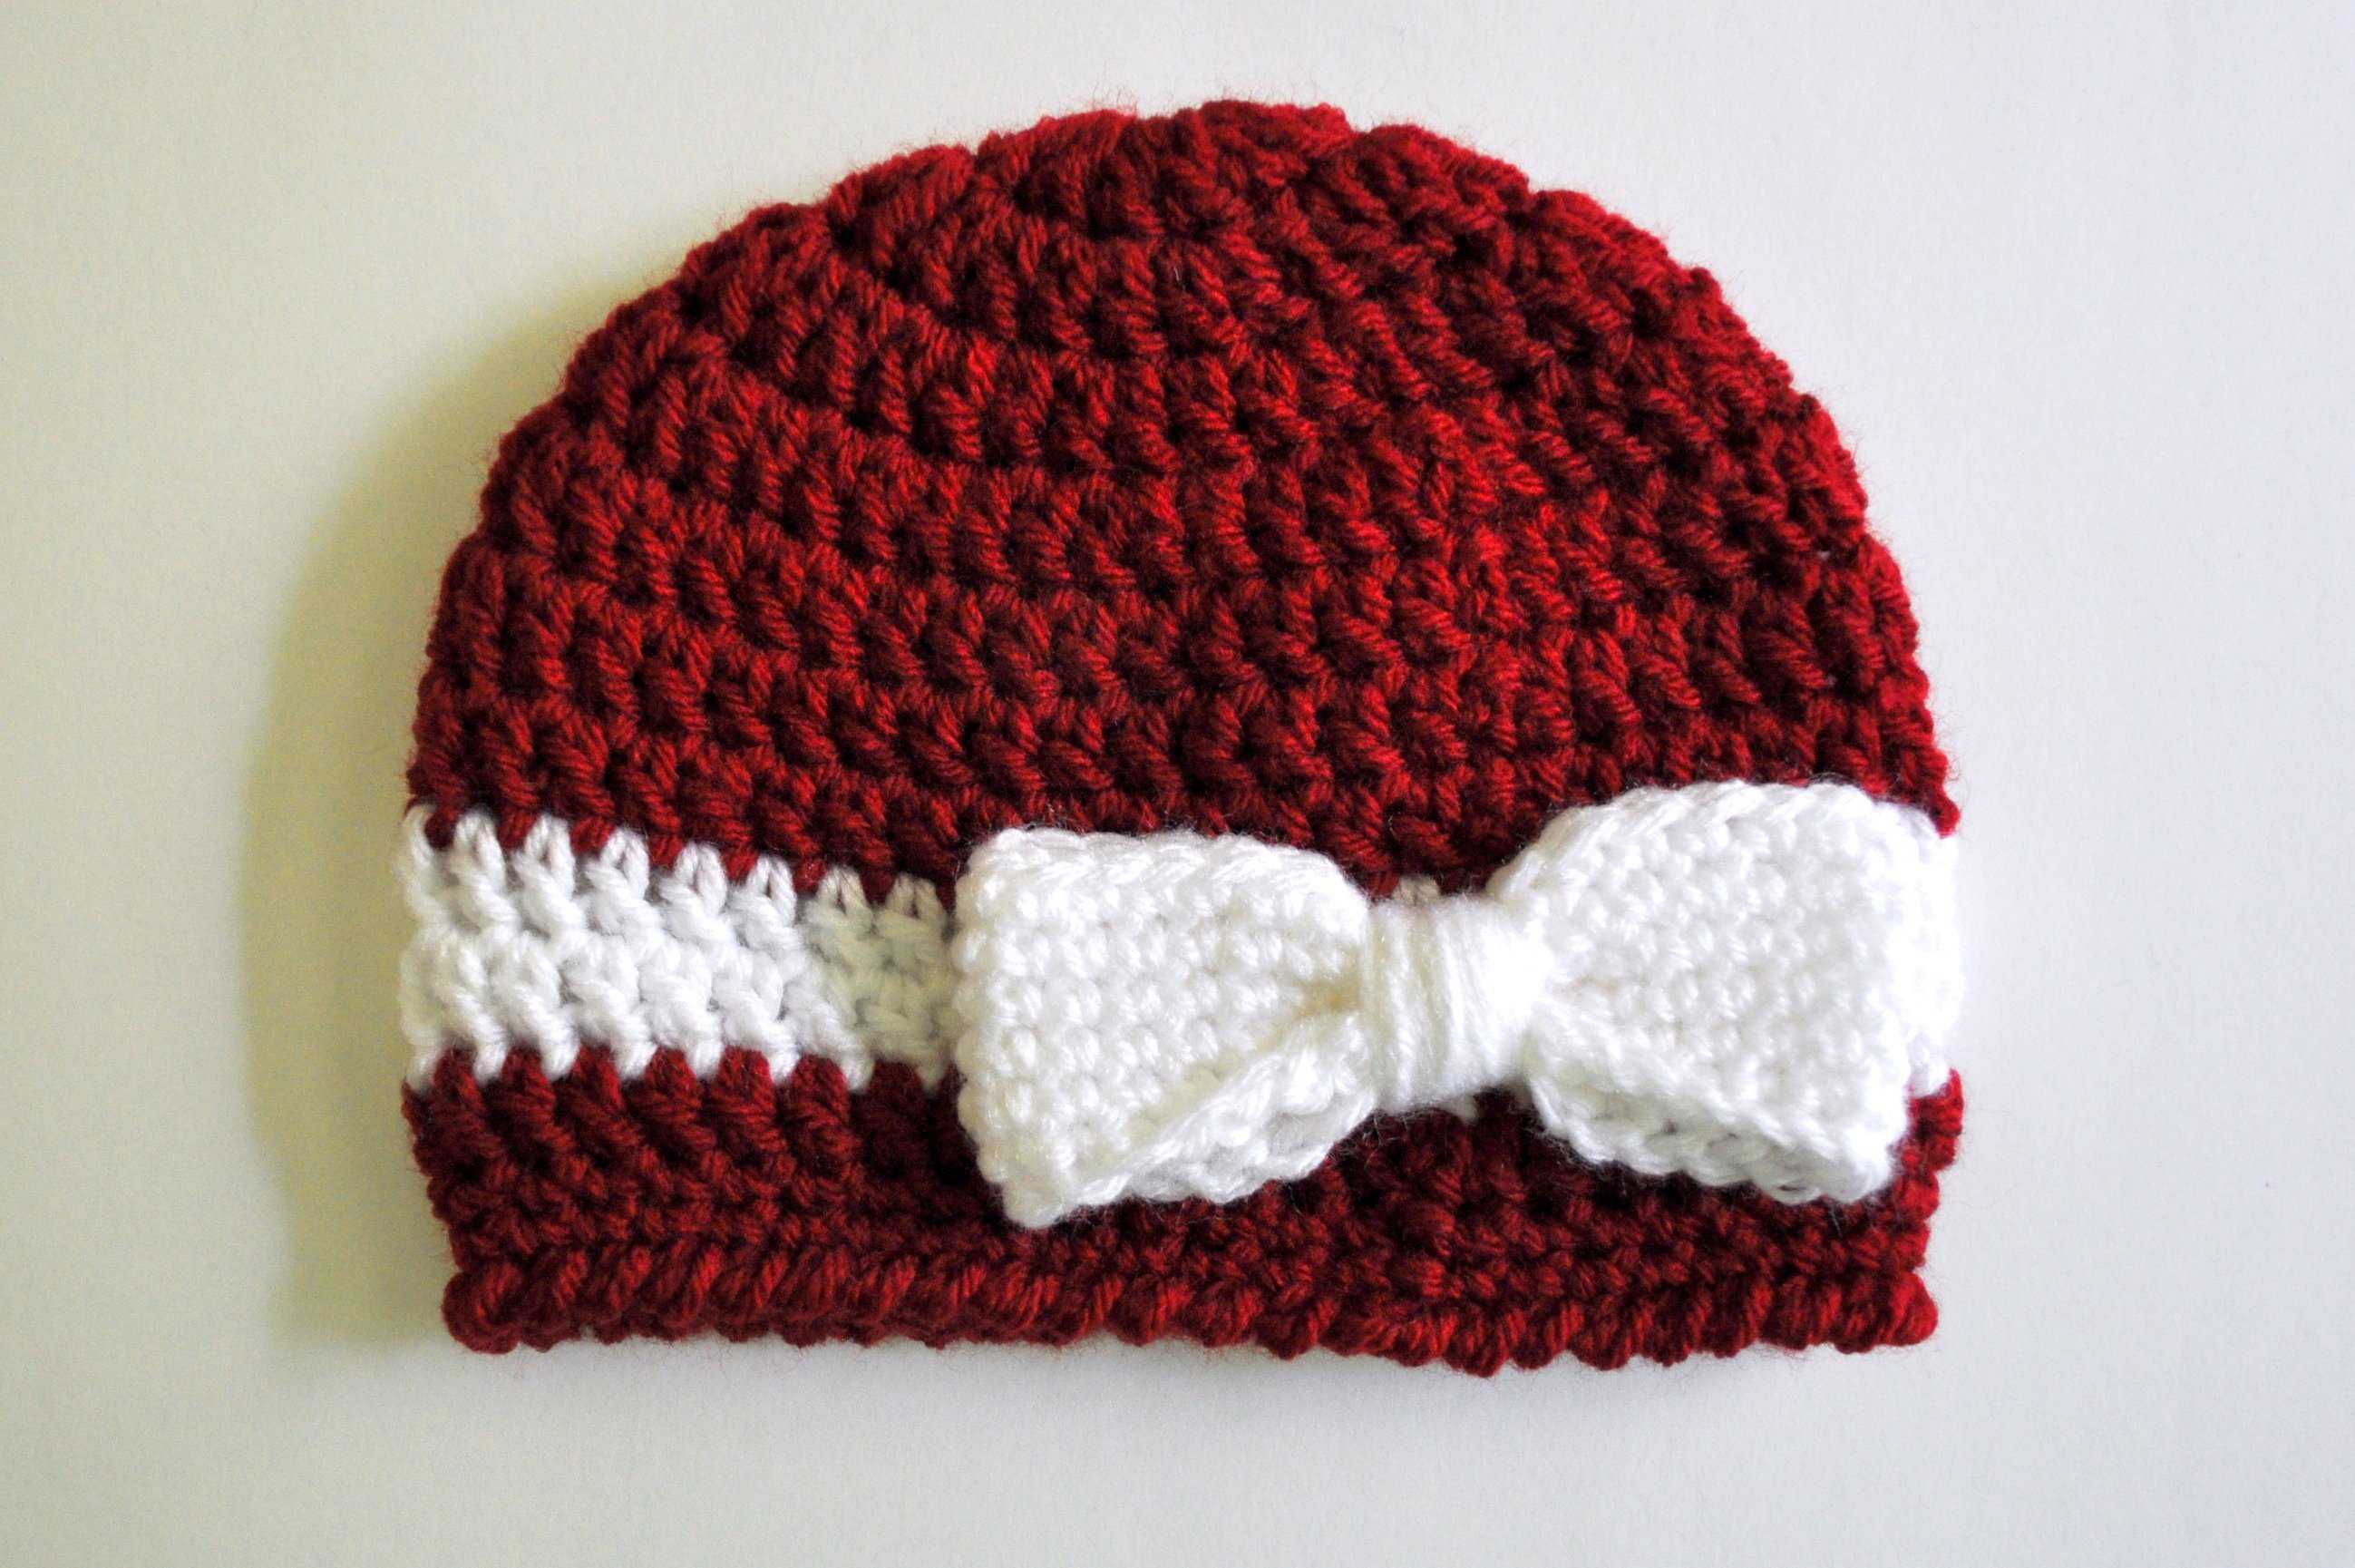 Crochet Patterns Baby Hats : 25 Easy Crochet Bow Patterns Guide Patterns